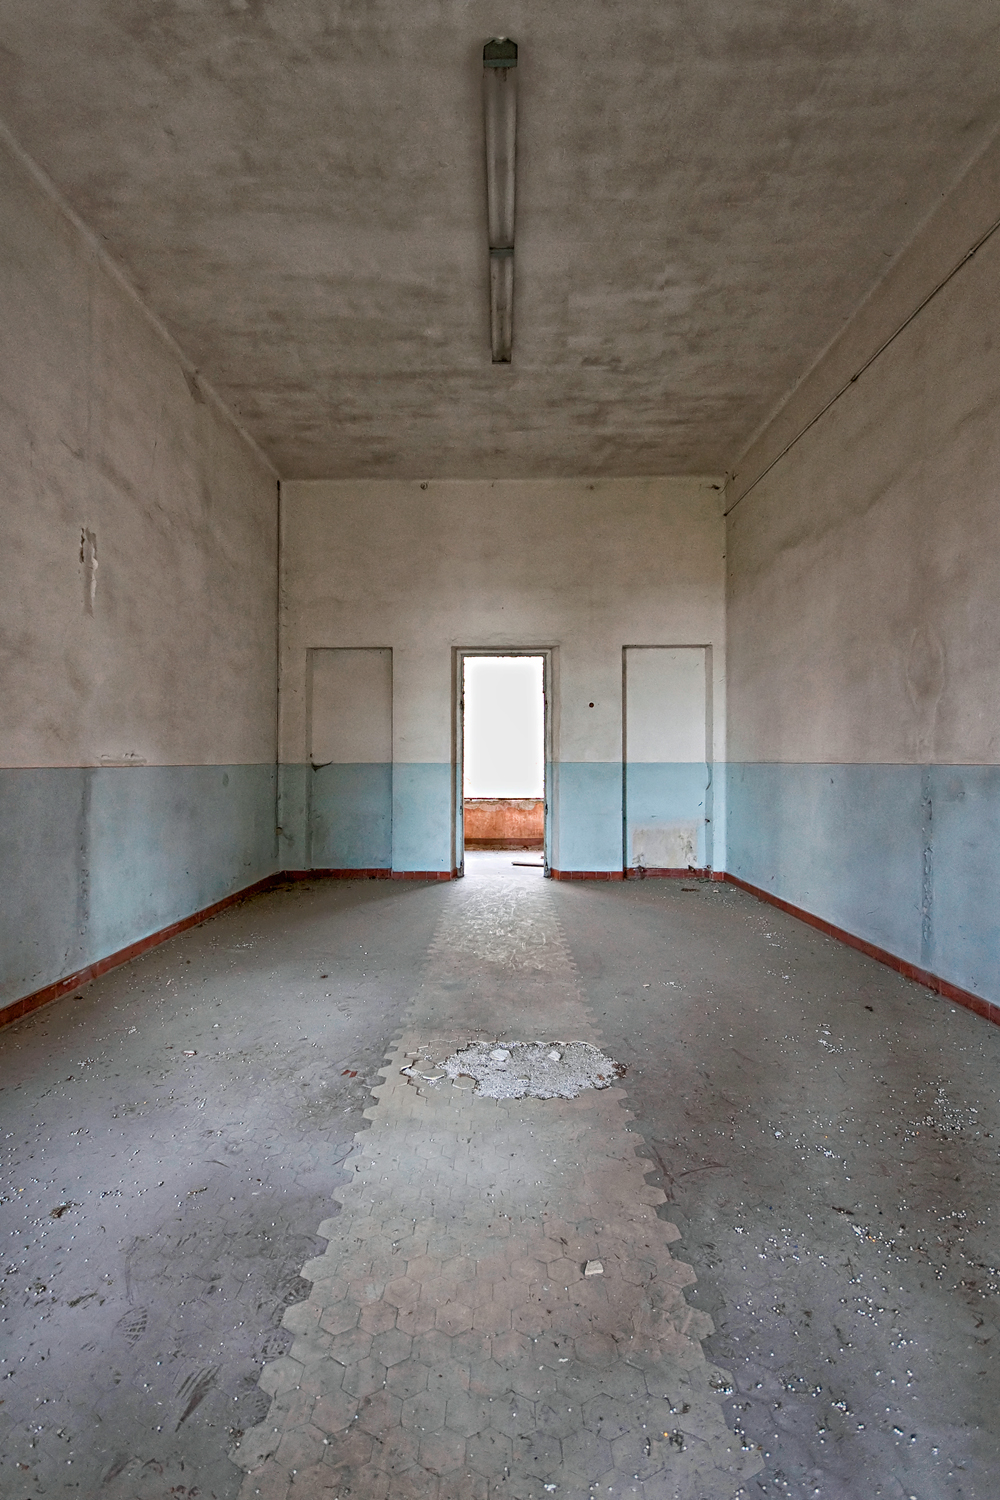 Interior abandonment by Lorenzo Linthout